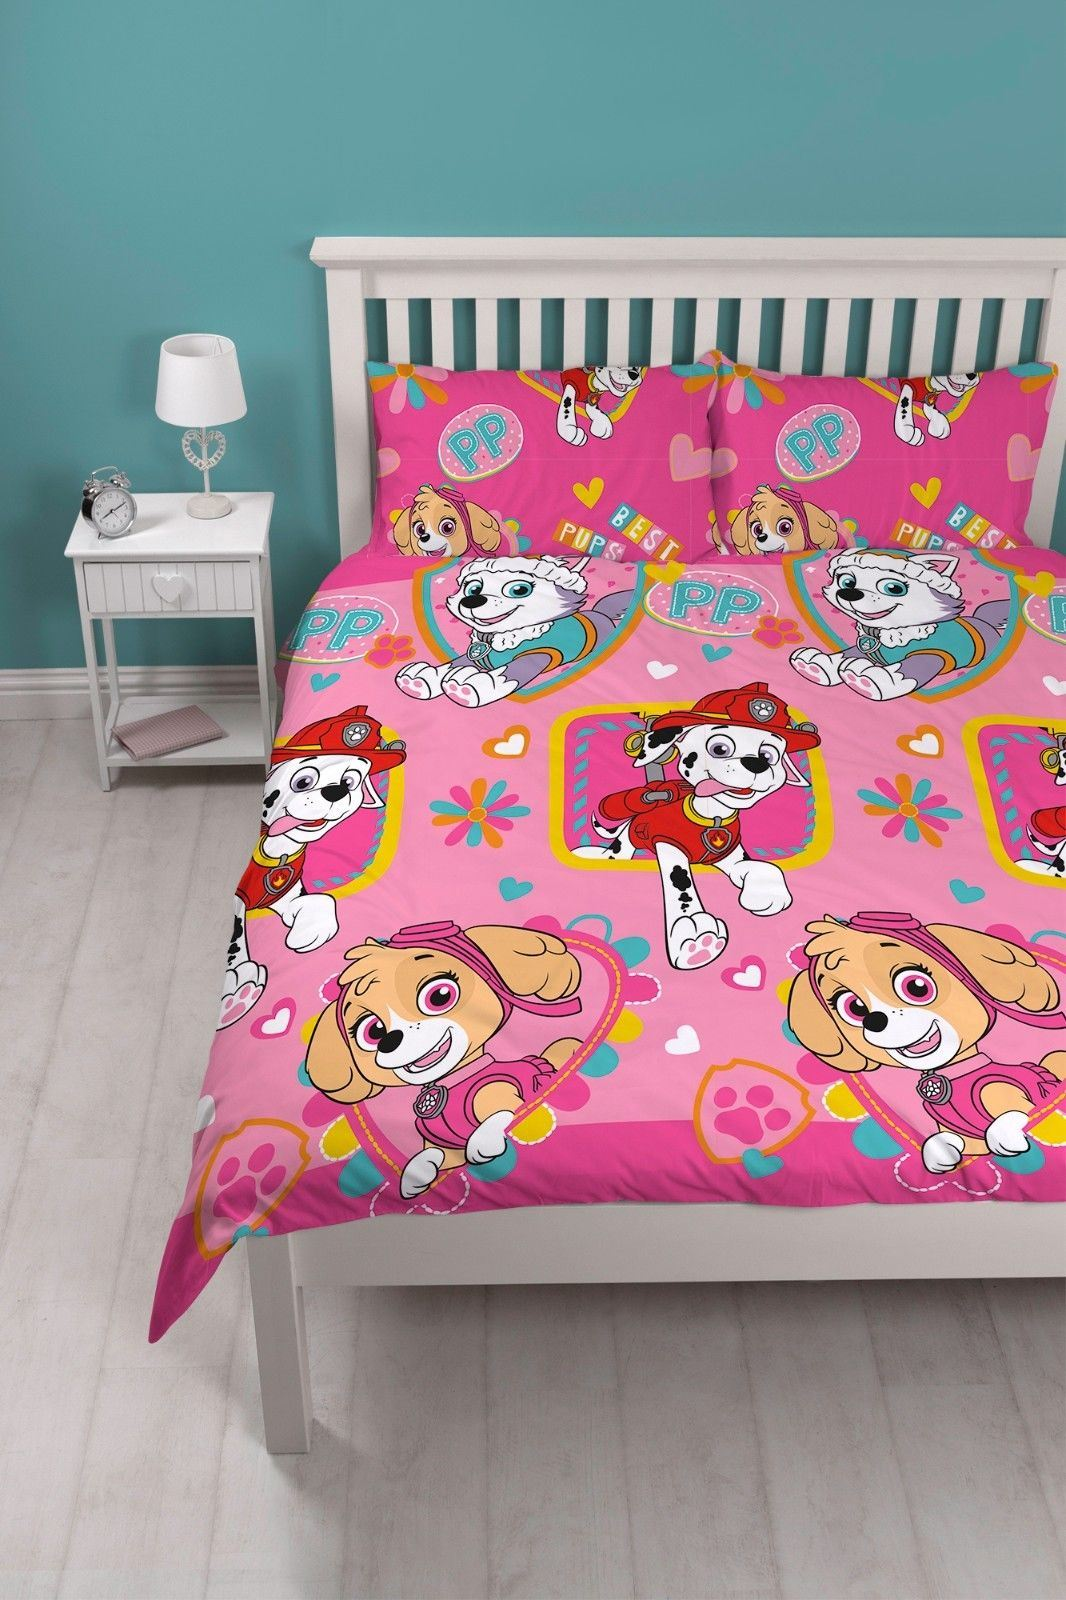 Official-Paw-Patrol-Licensed-Duvet-Covers-Single-Double-Chase-Skye-Marshall thumbnail 16